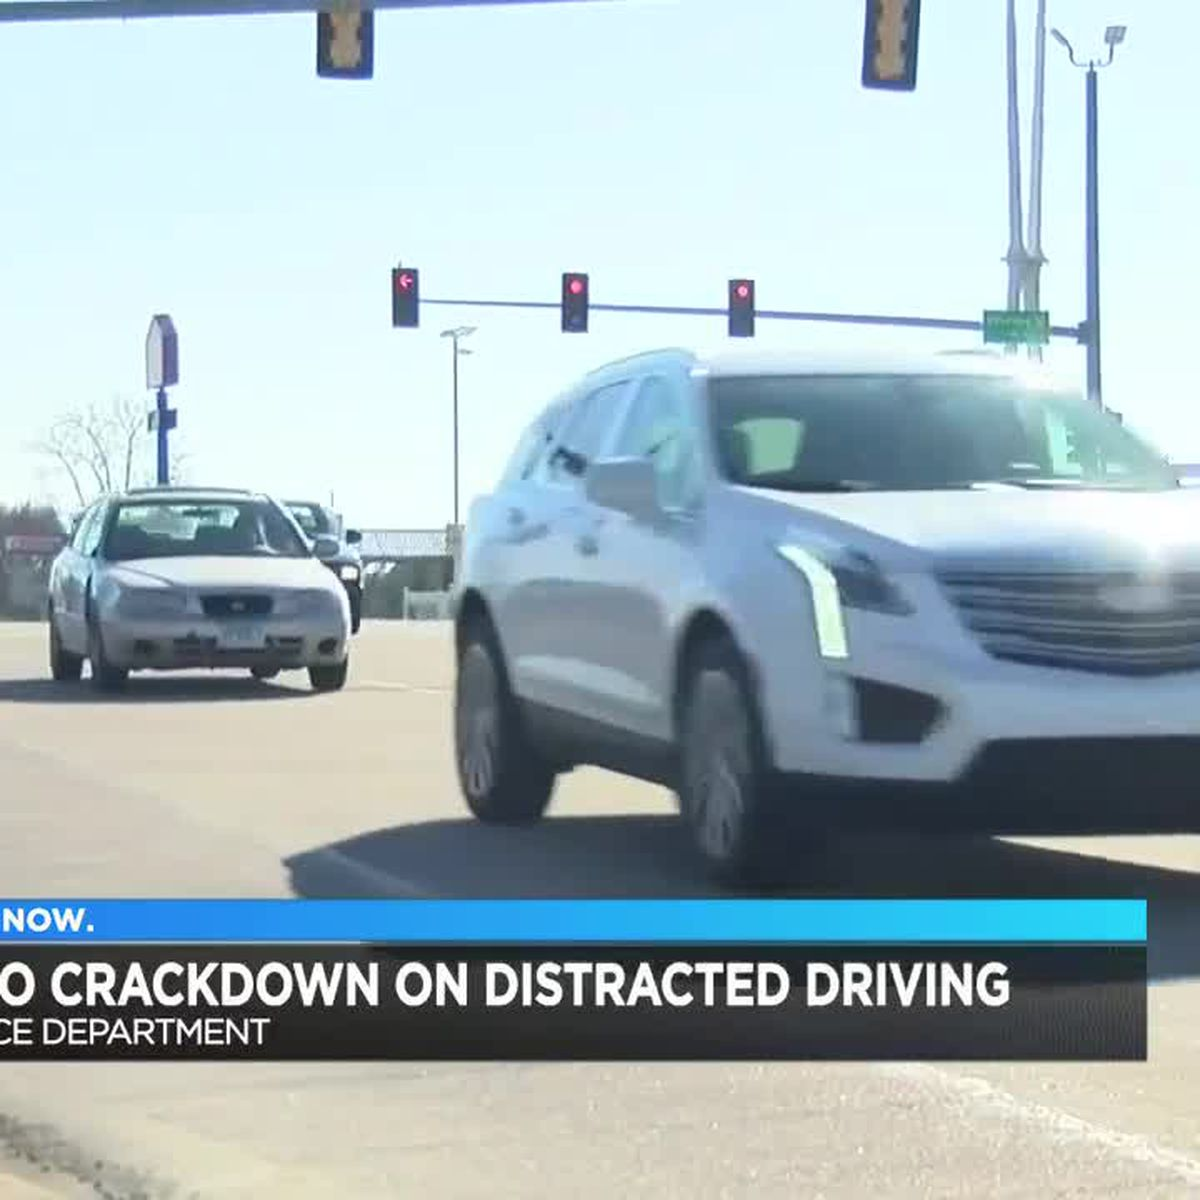 Police crack down on distracted driving